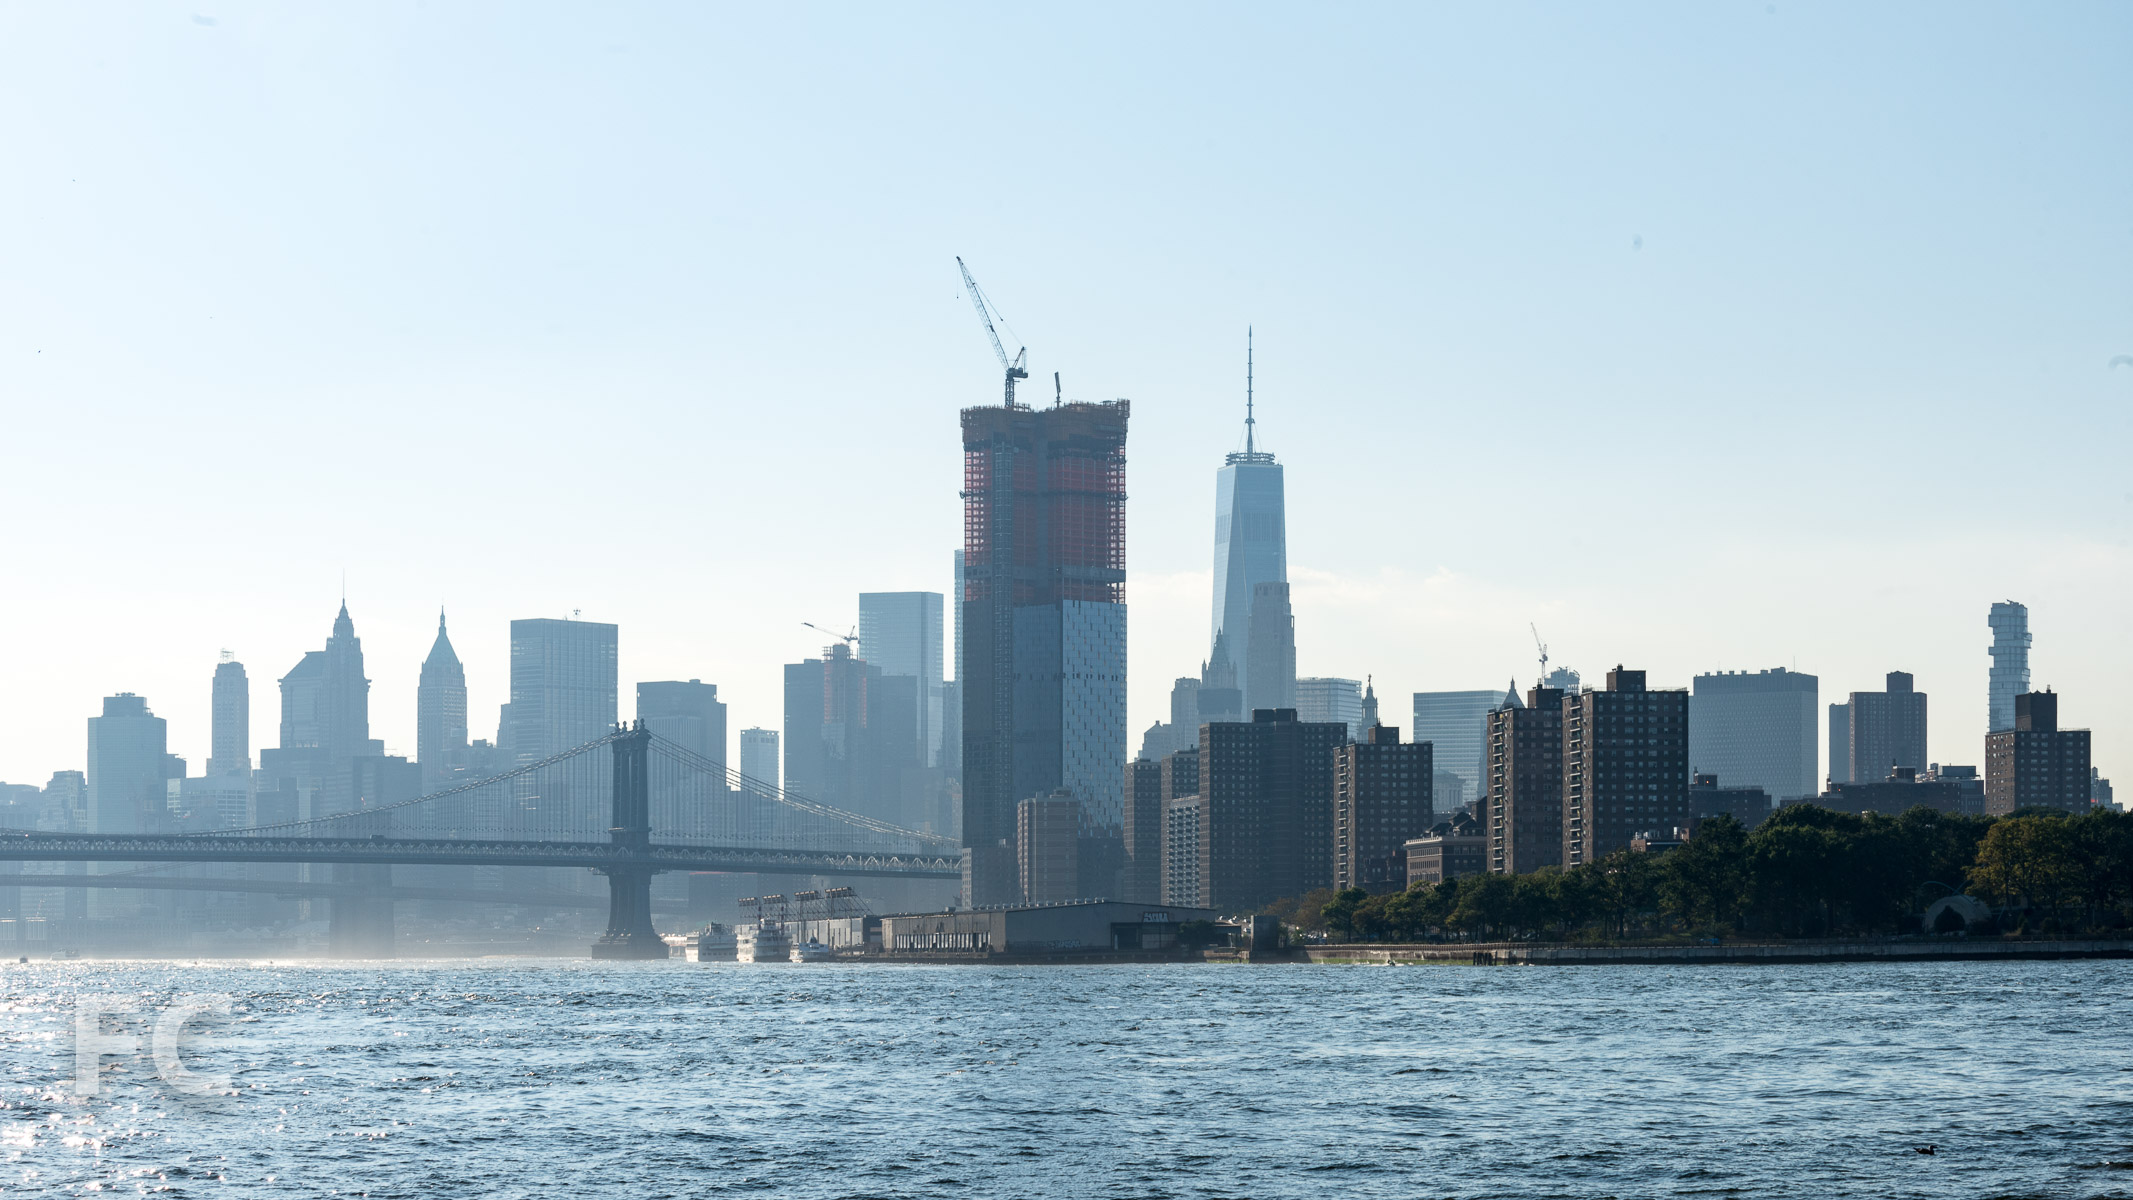 View south from the East River, with One Manhattan Square (center) and One World Trade Center (right).